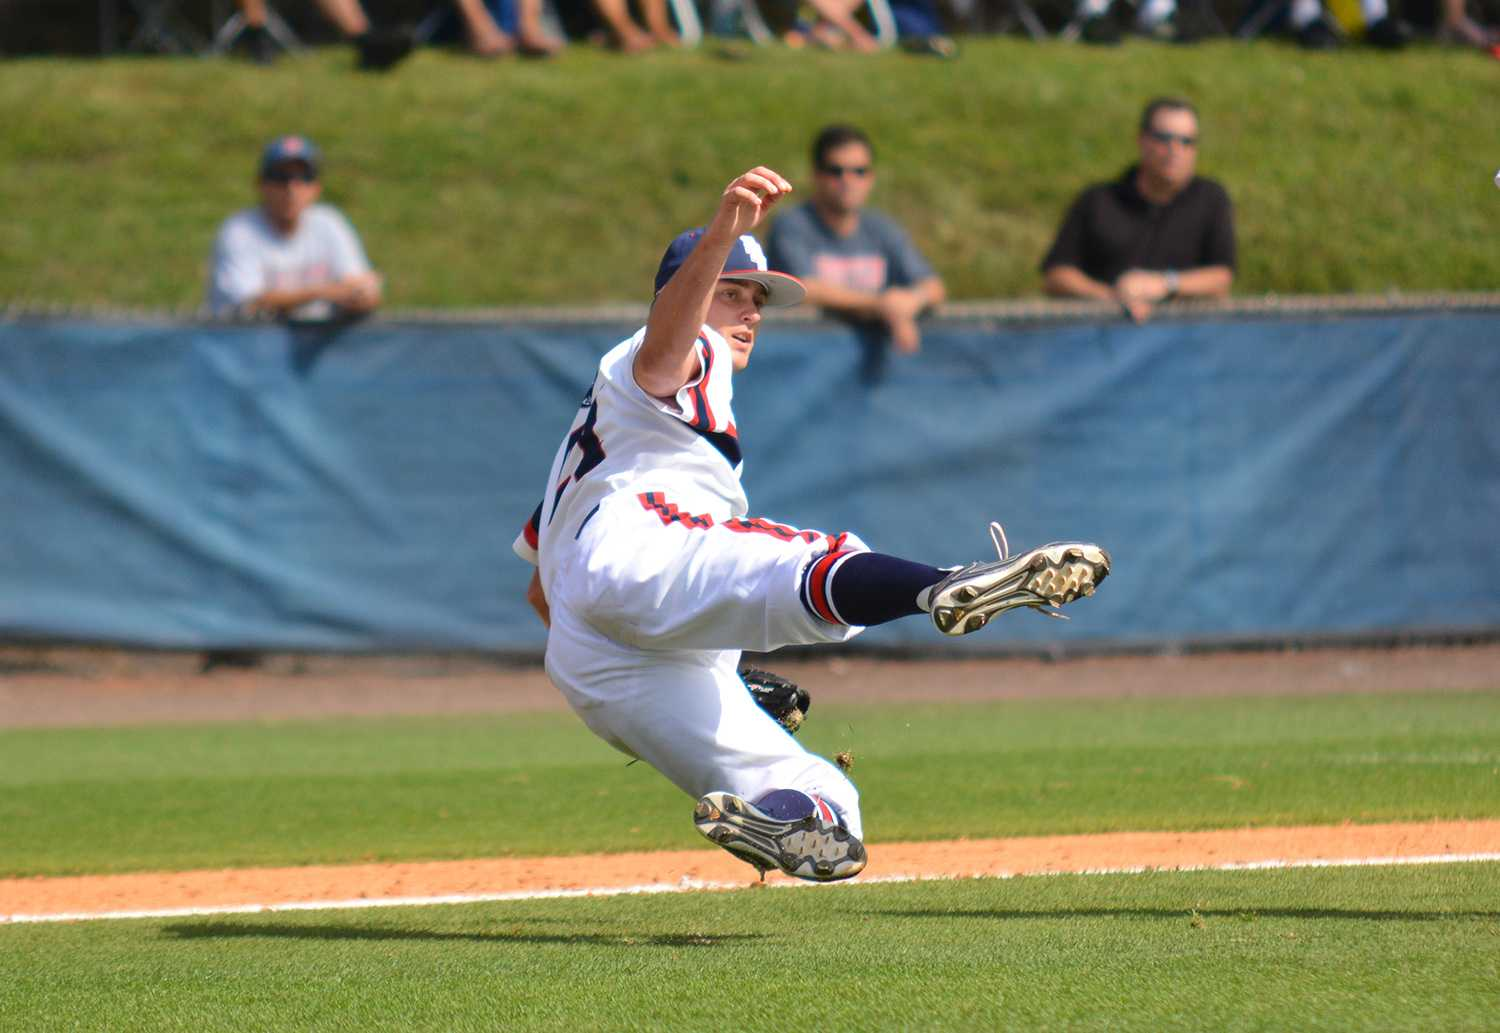 Relief pitcher Riley Monkman (21) follows the play as falling after throwing the ball to first base off of a bunt.